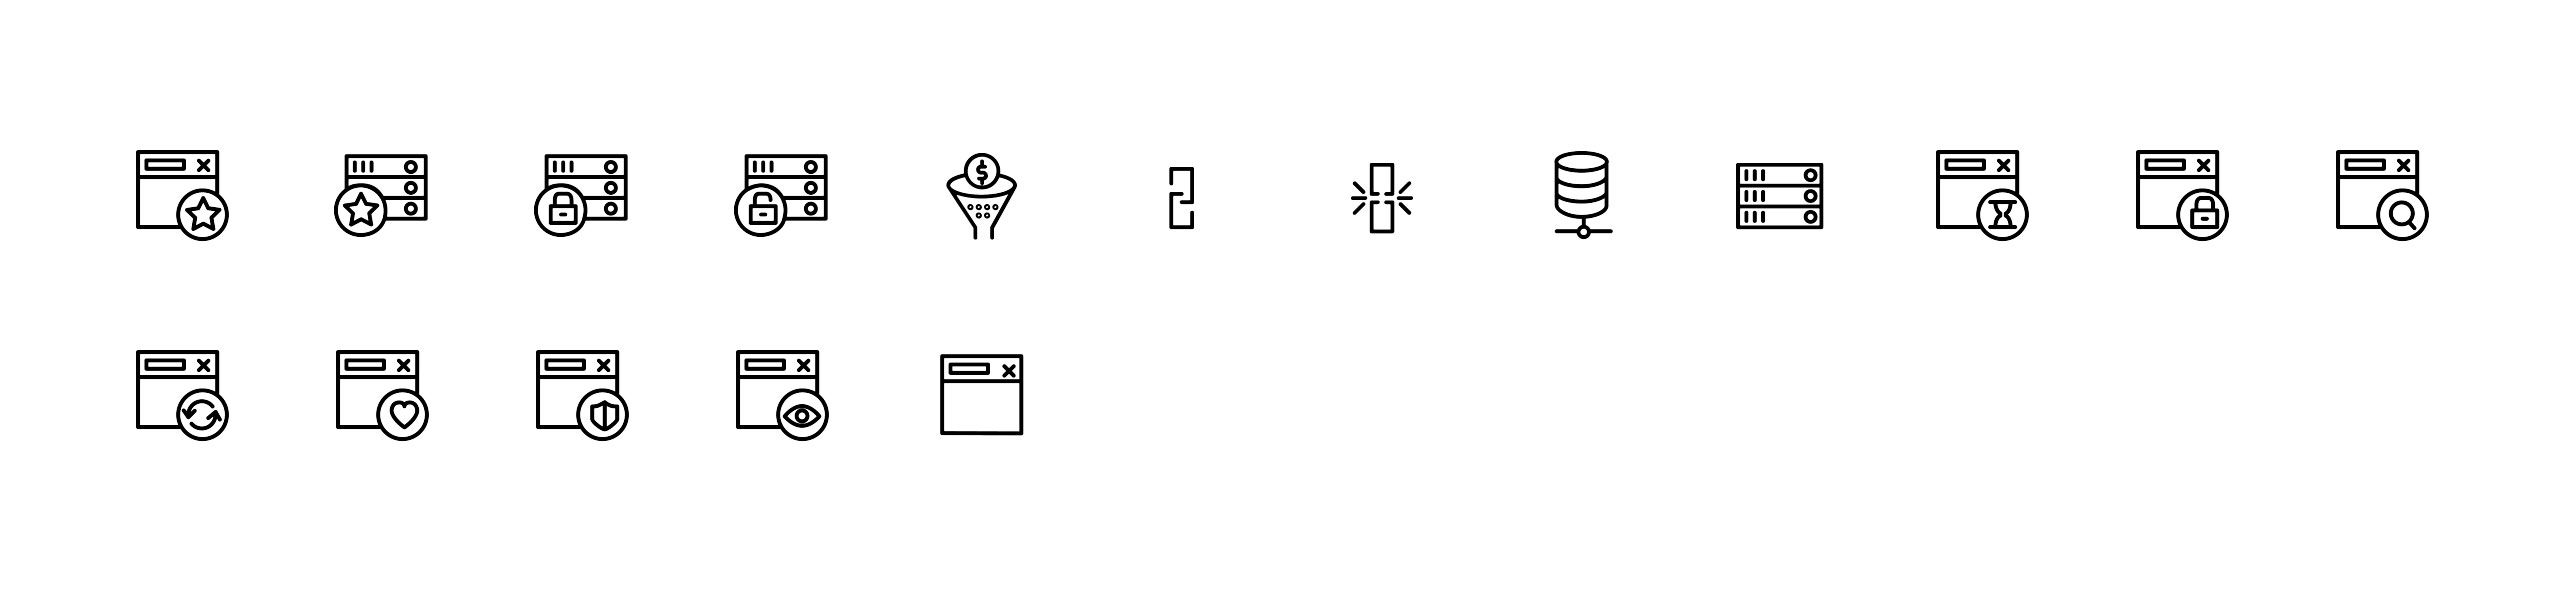 A collection of Network icons in clean and modern Line style. Check our other icon sets on www.metropolicons.com